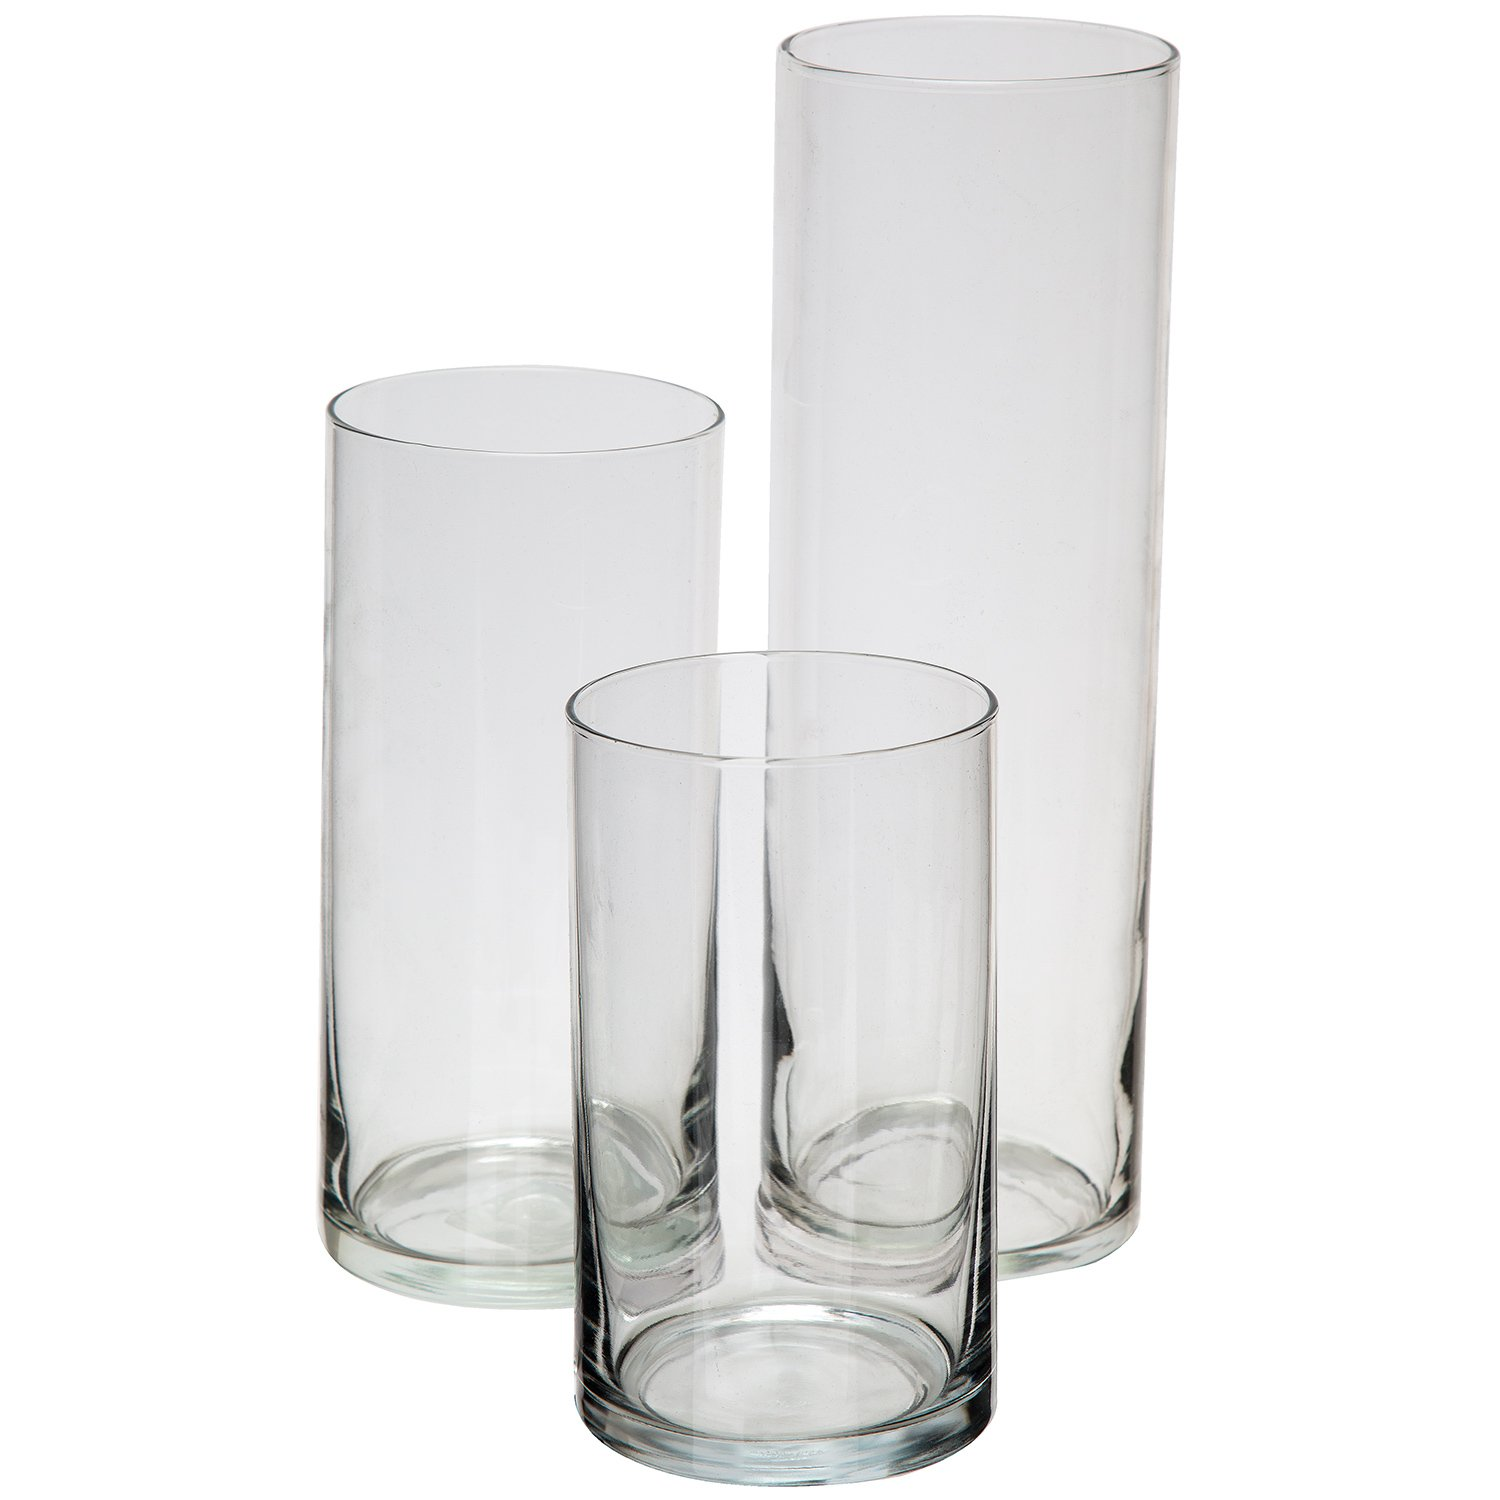 Glass Cylinder Vases SET OF 3 Decorative Centerpieces For Home or ...